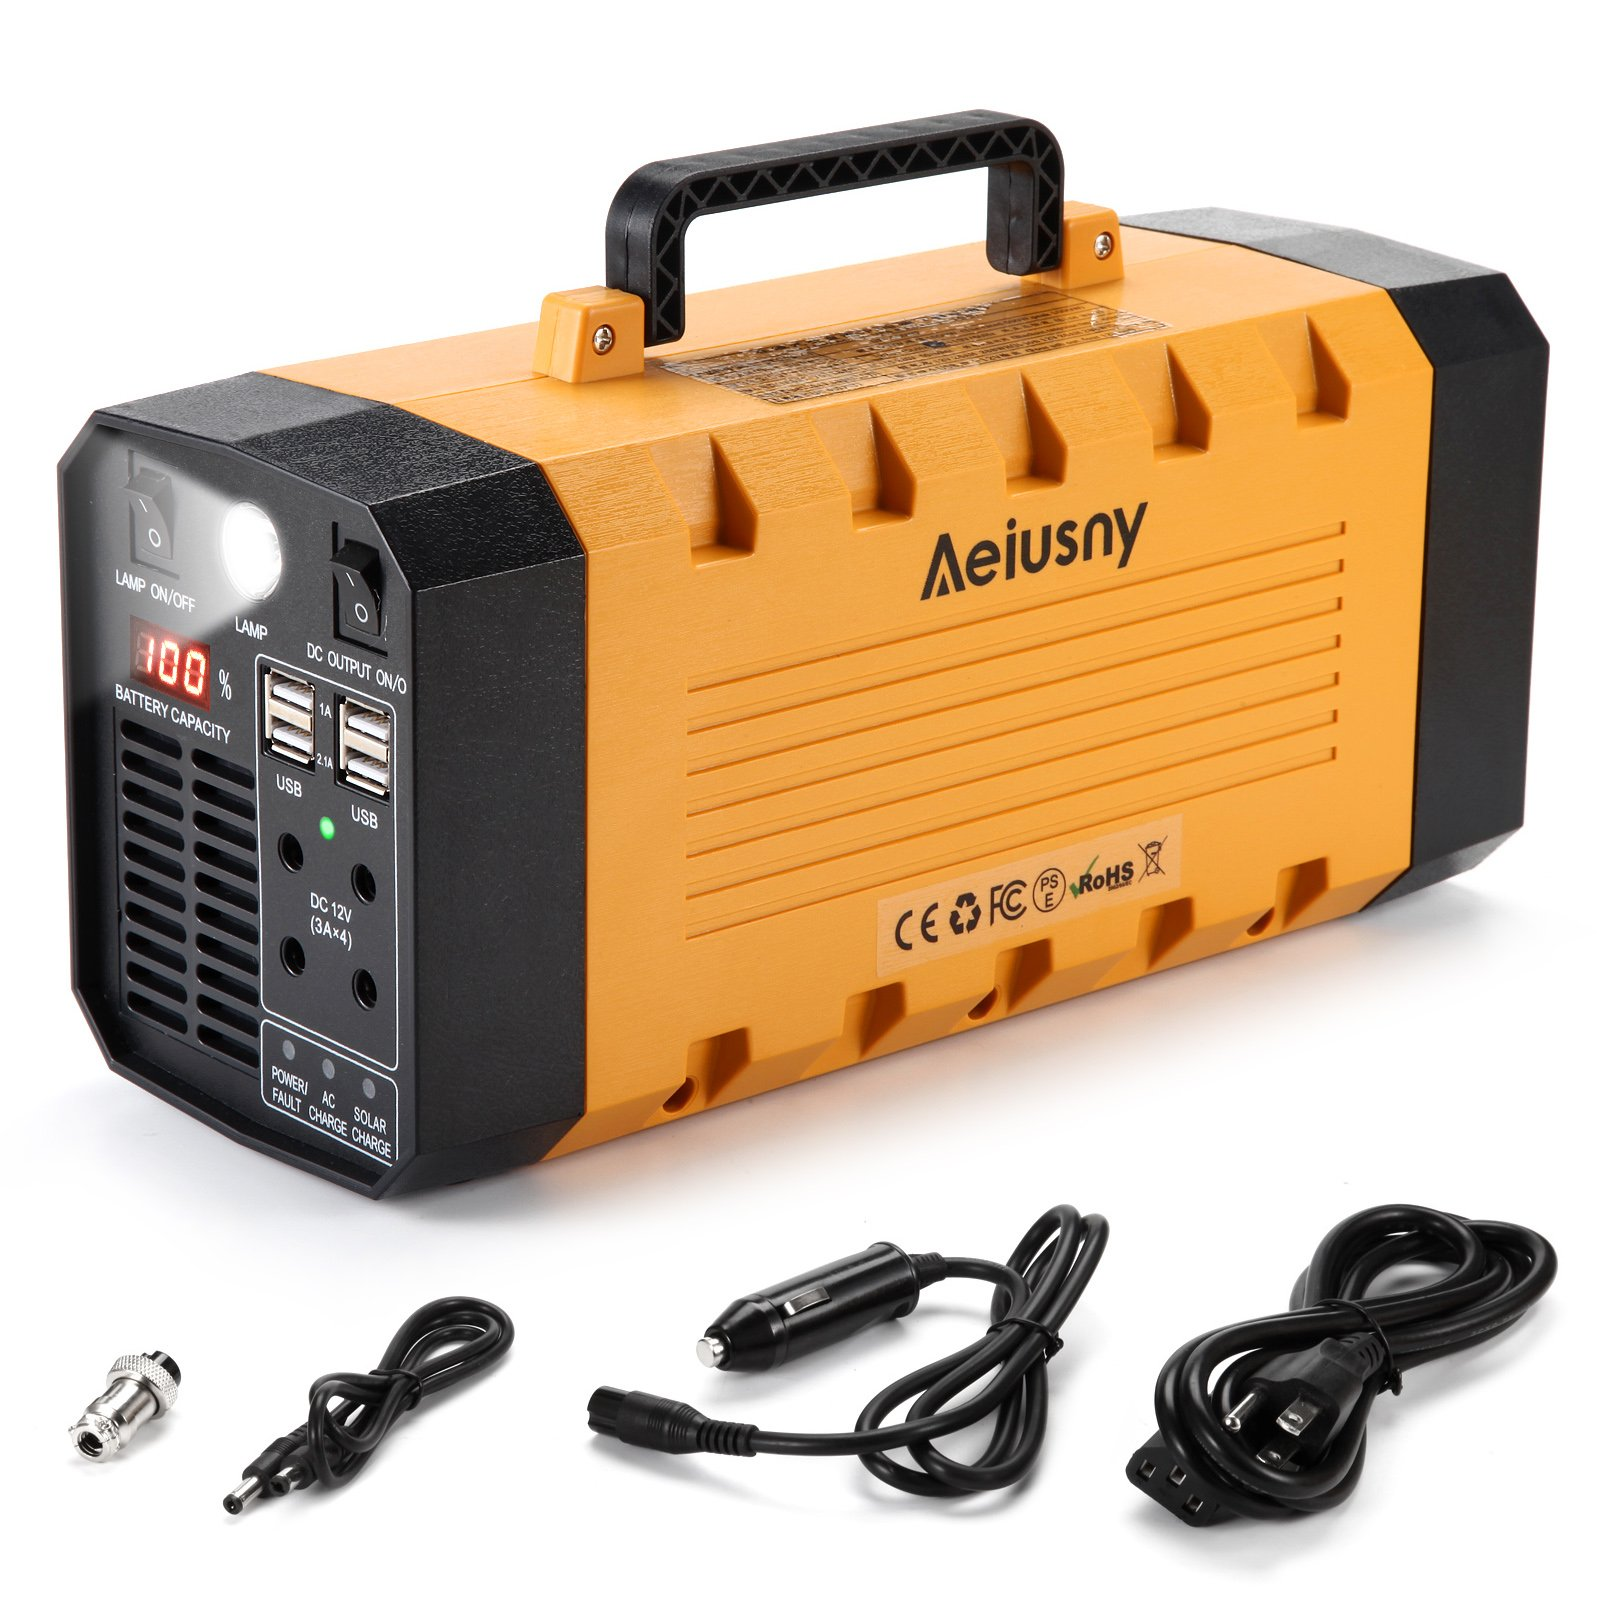 Aeiusny Portable Solar Generator, 288Wh 500W Lithium Battery Power Station, CPAP Backup Battery Power Supply for Camping Travel Fishing Hurricane by Aeiusny